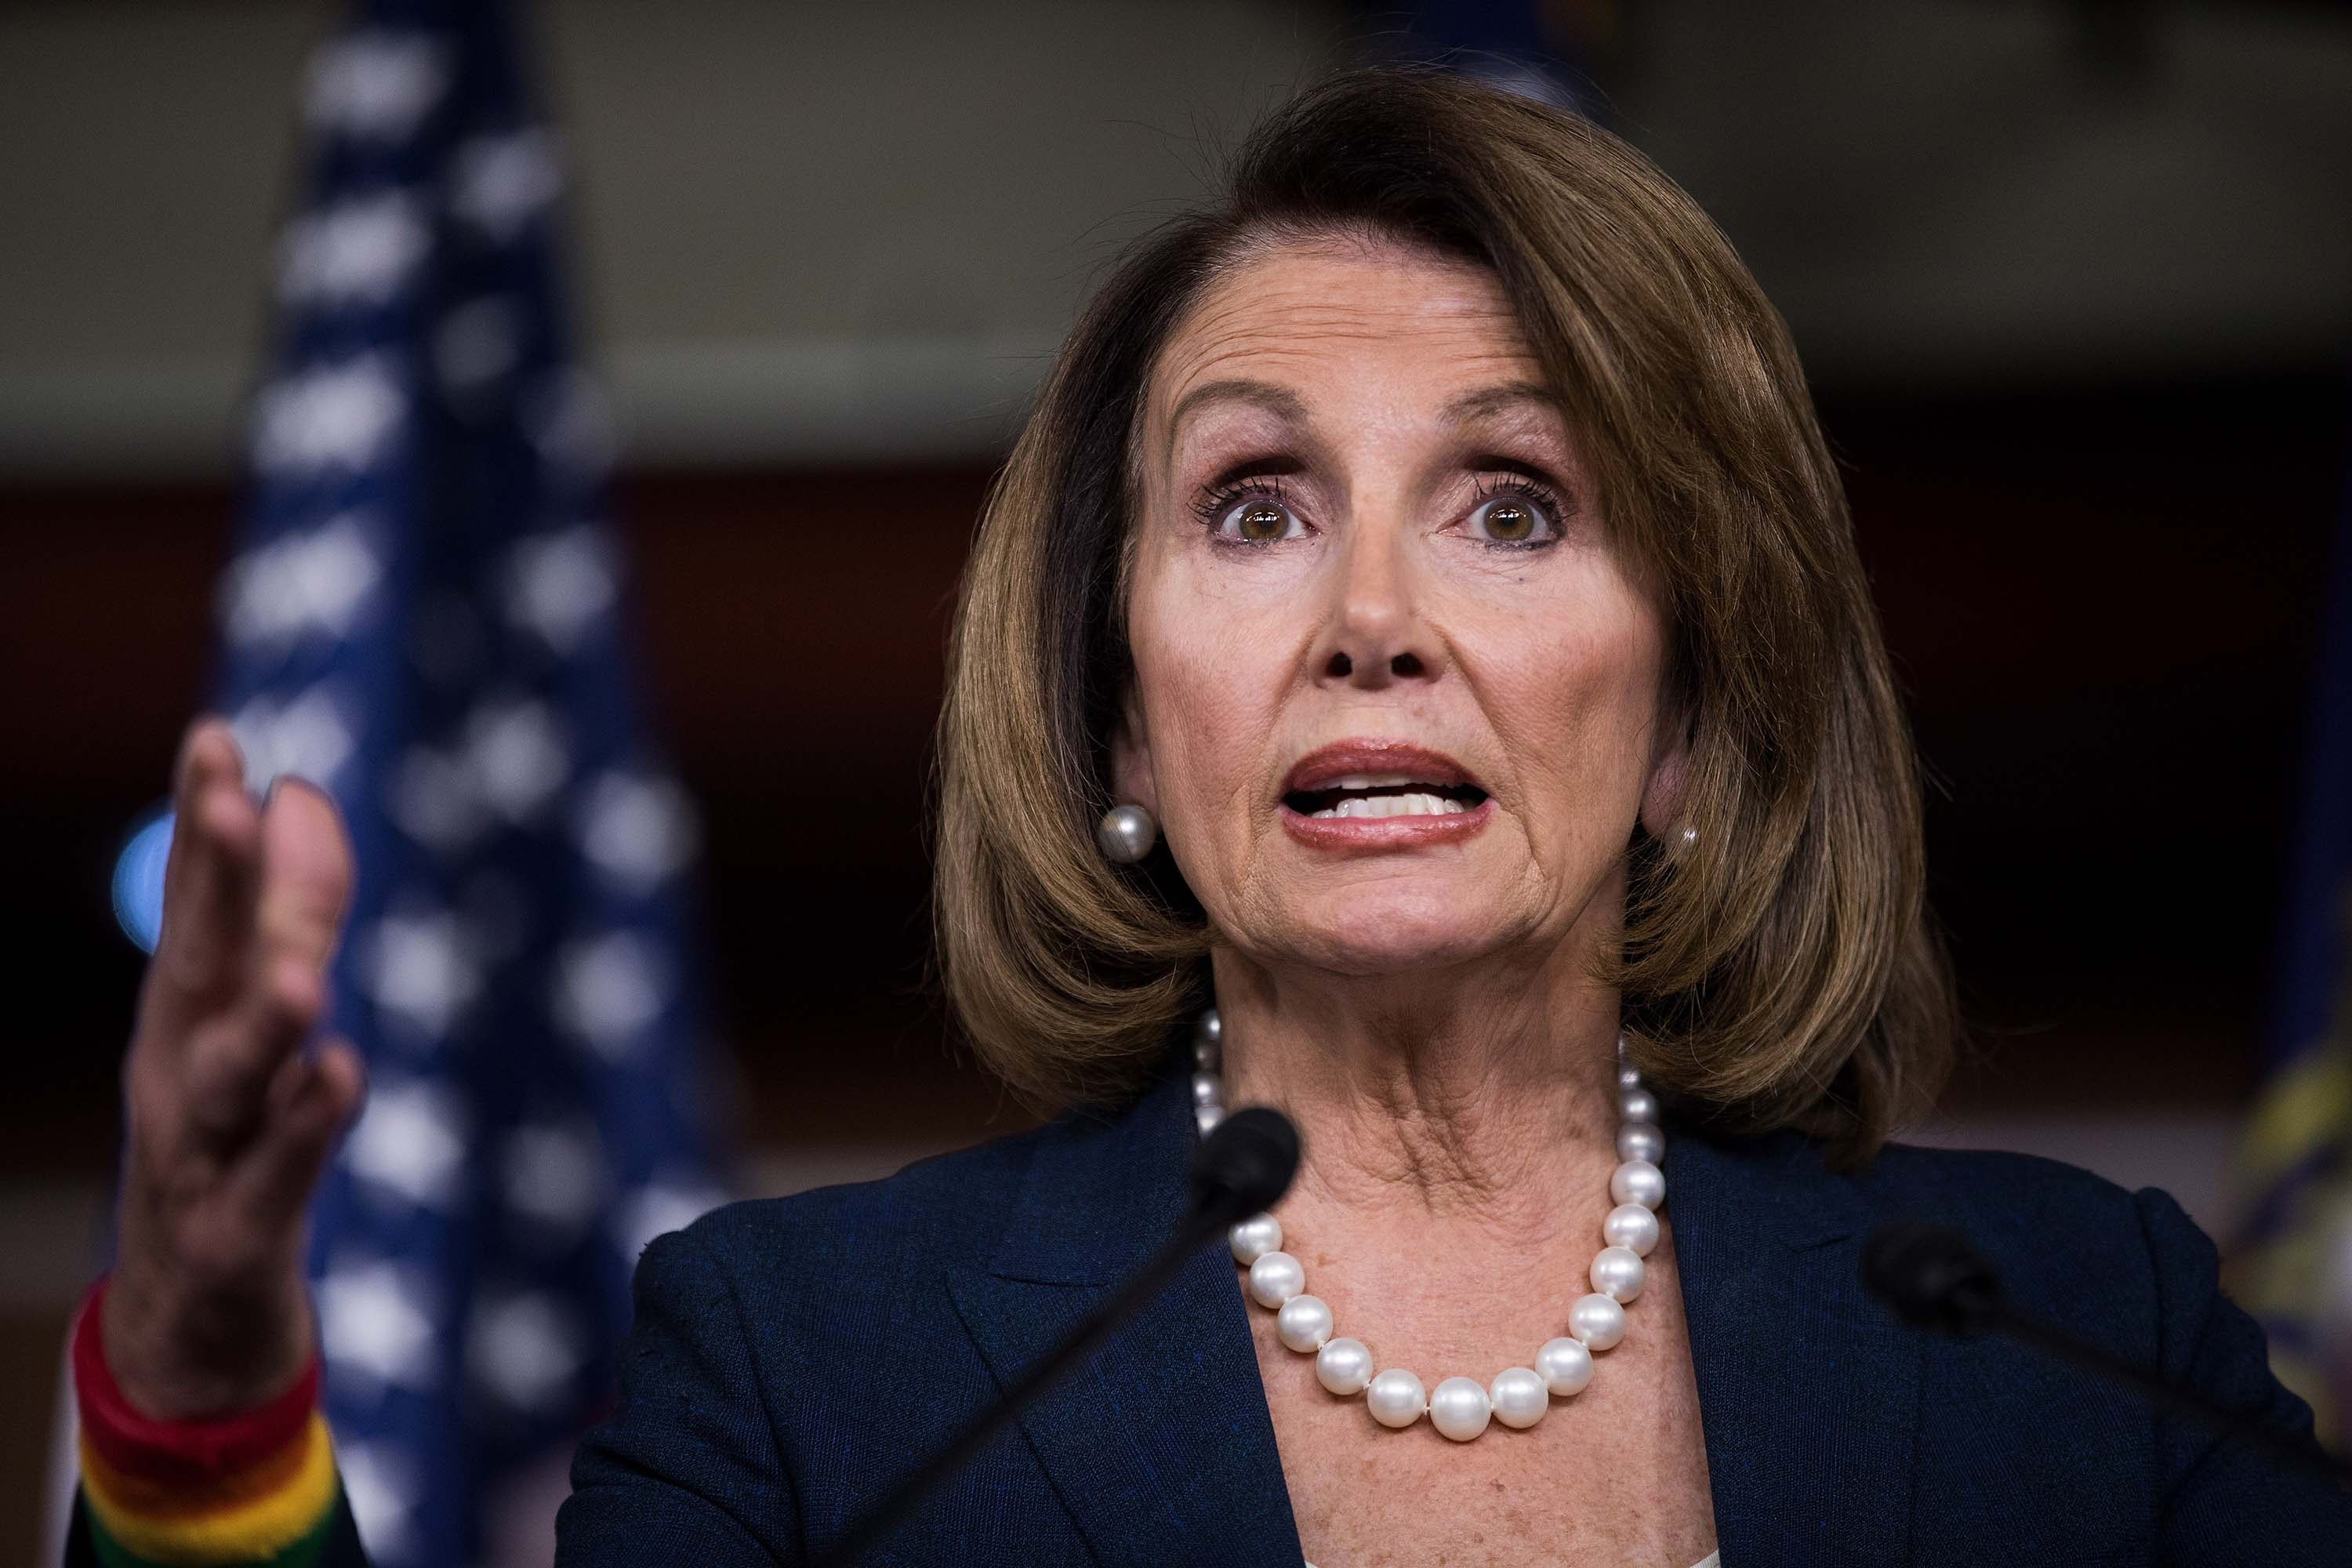 Pelosi says she will run for Speaker again if Democrats keep control of the House